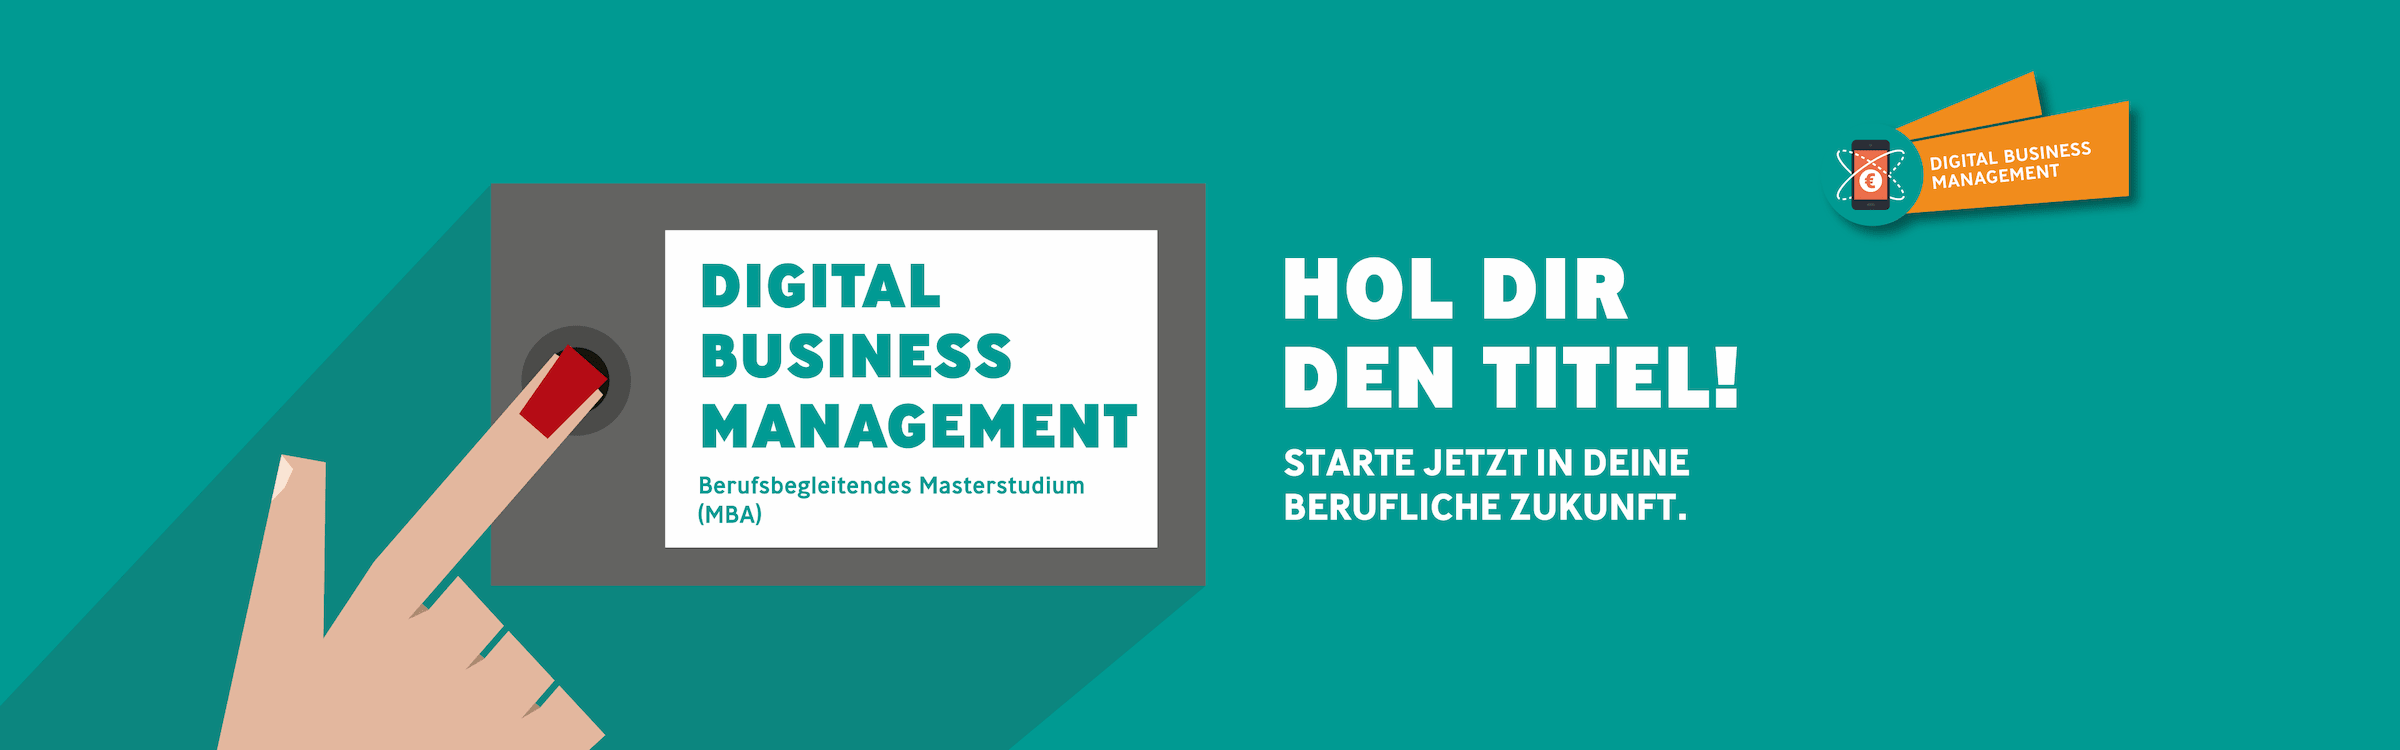 Bild für Banner Digital Business Management